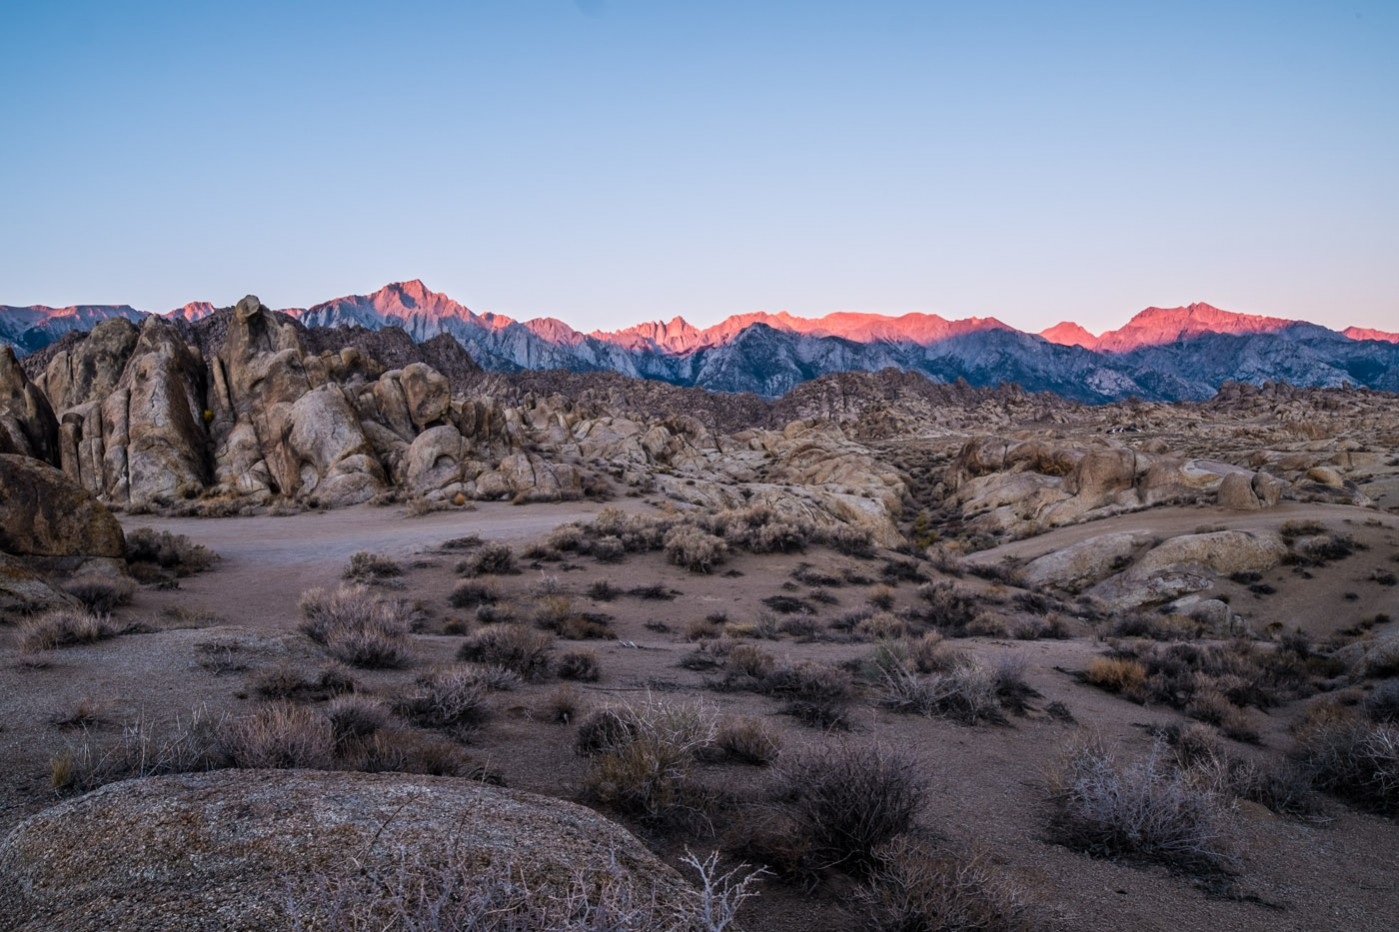 Eastern Sierras from Alabama Hills, California.